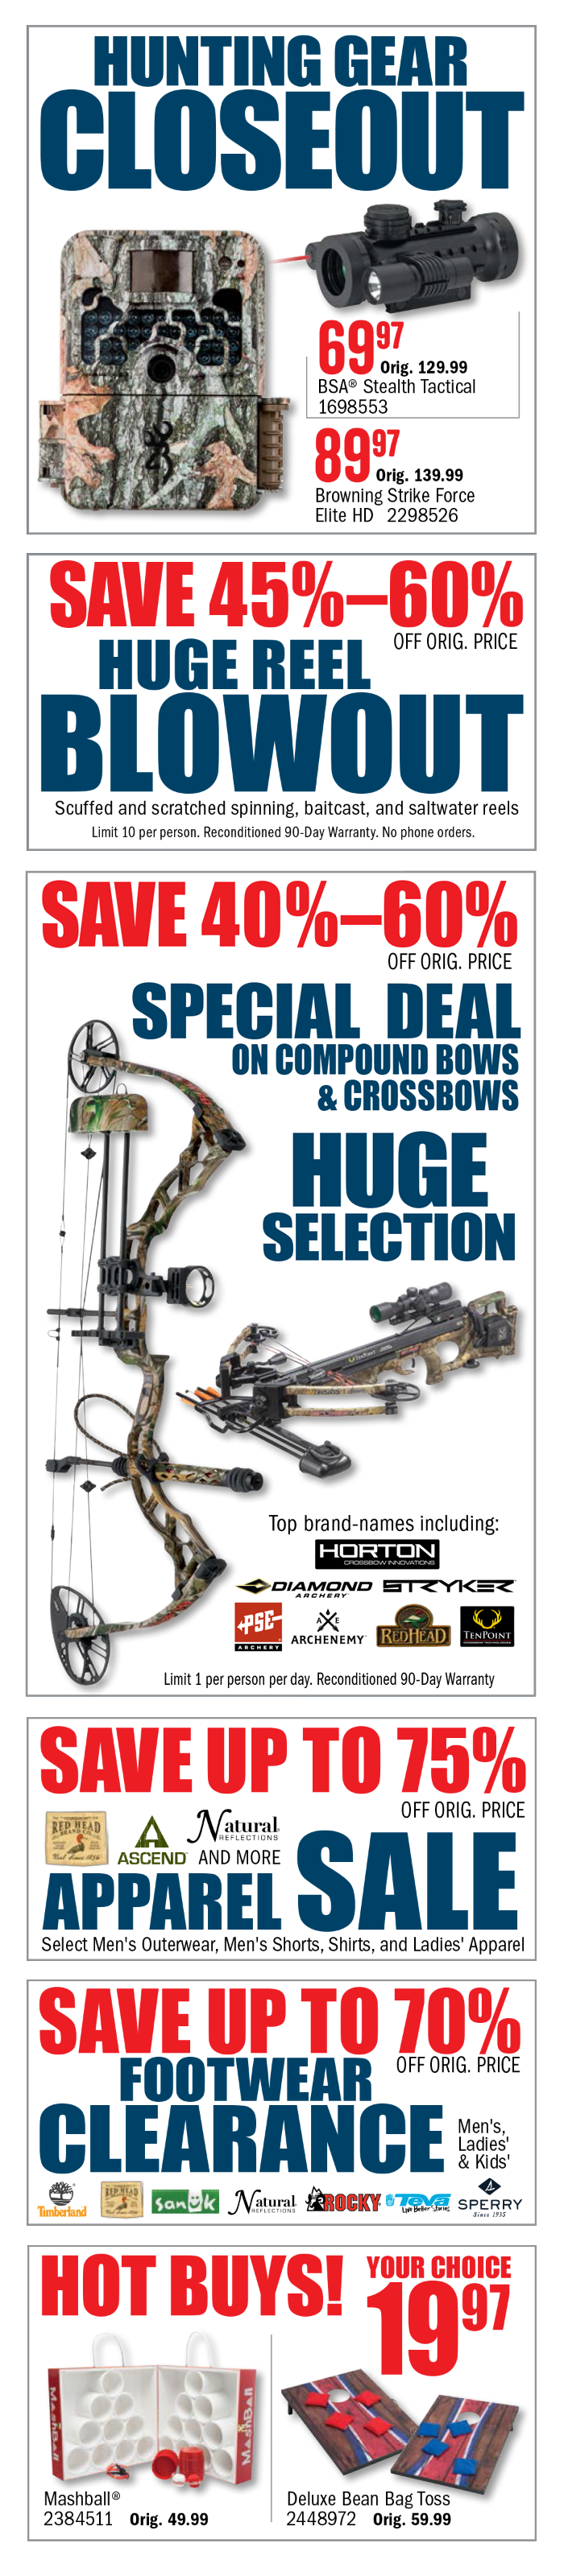 Hunting Gear Closeout, Huge Reel Blowout, Special Deals on Bows, Apparel Sale, Footwear Clearance & Much More